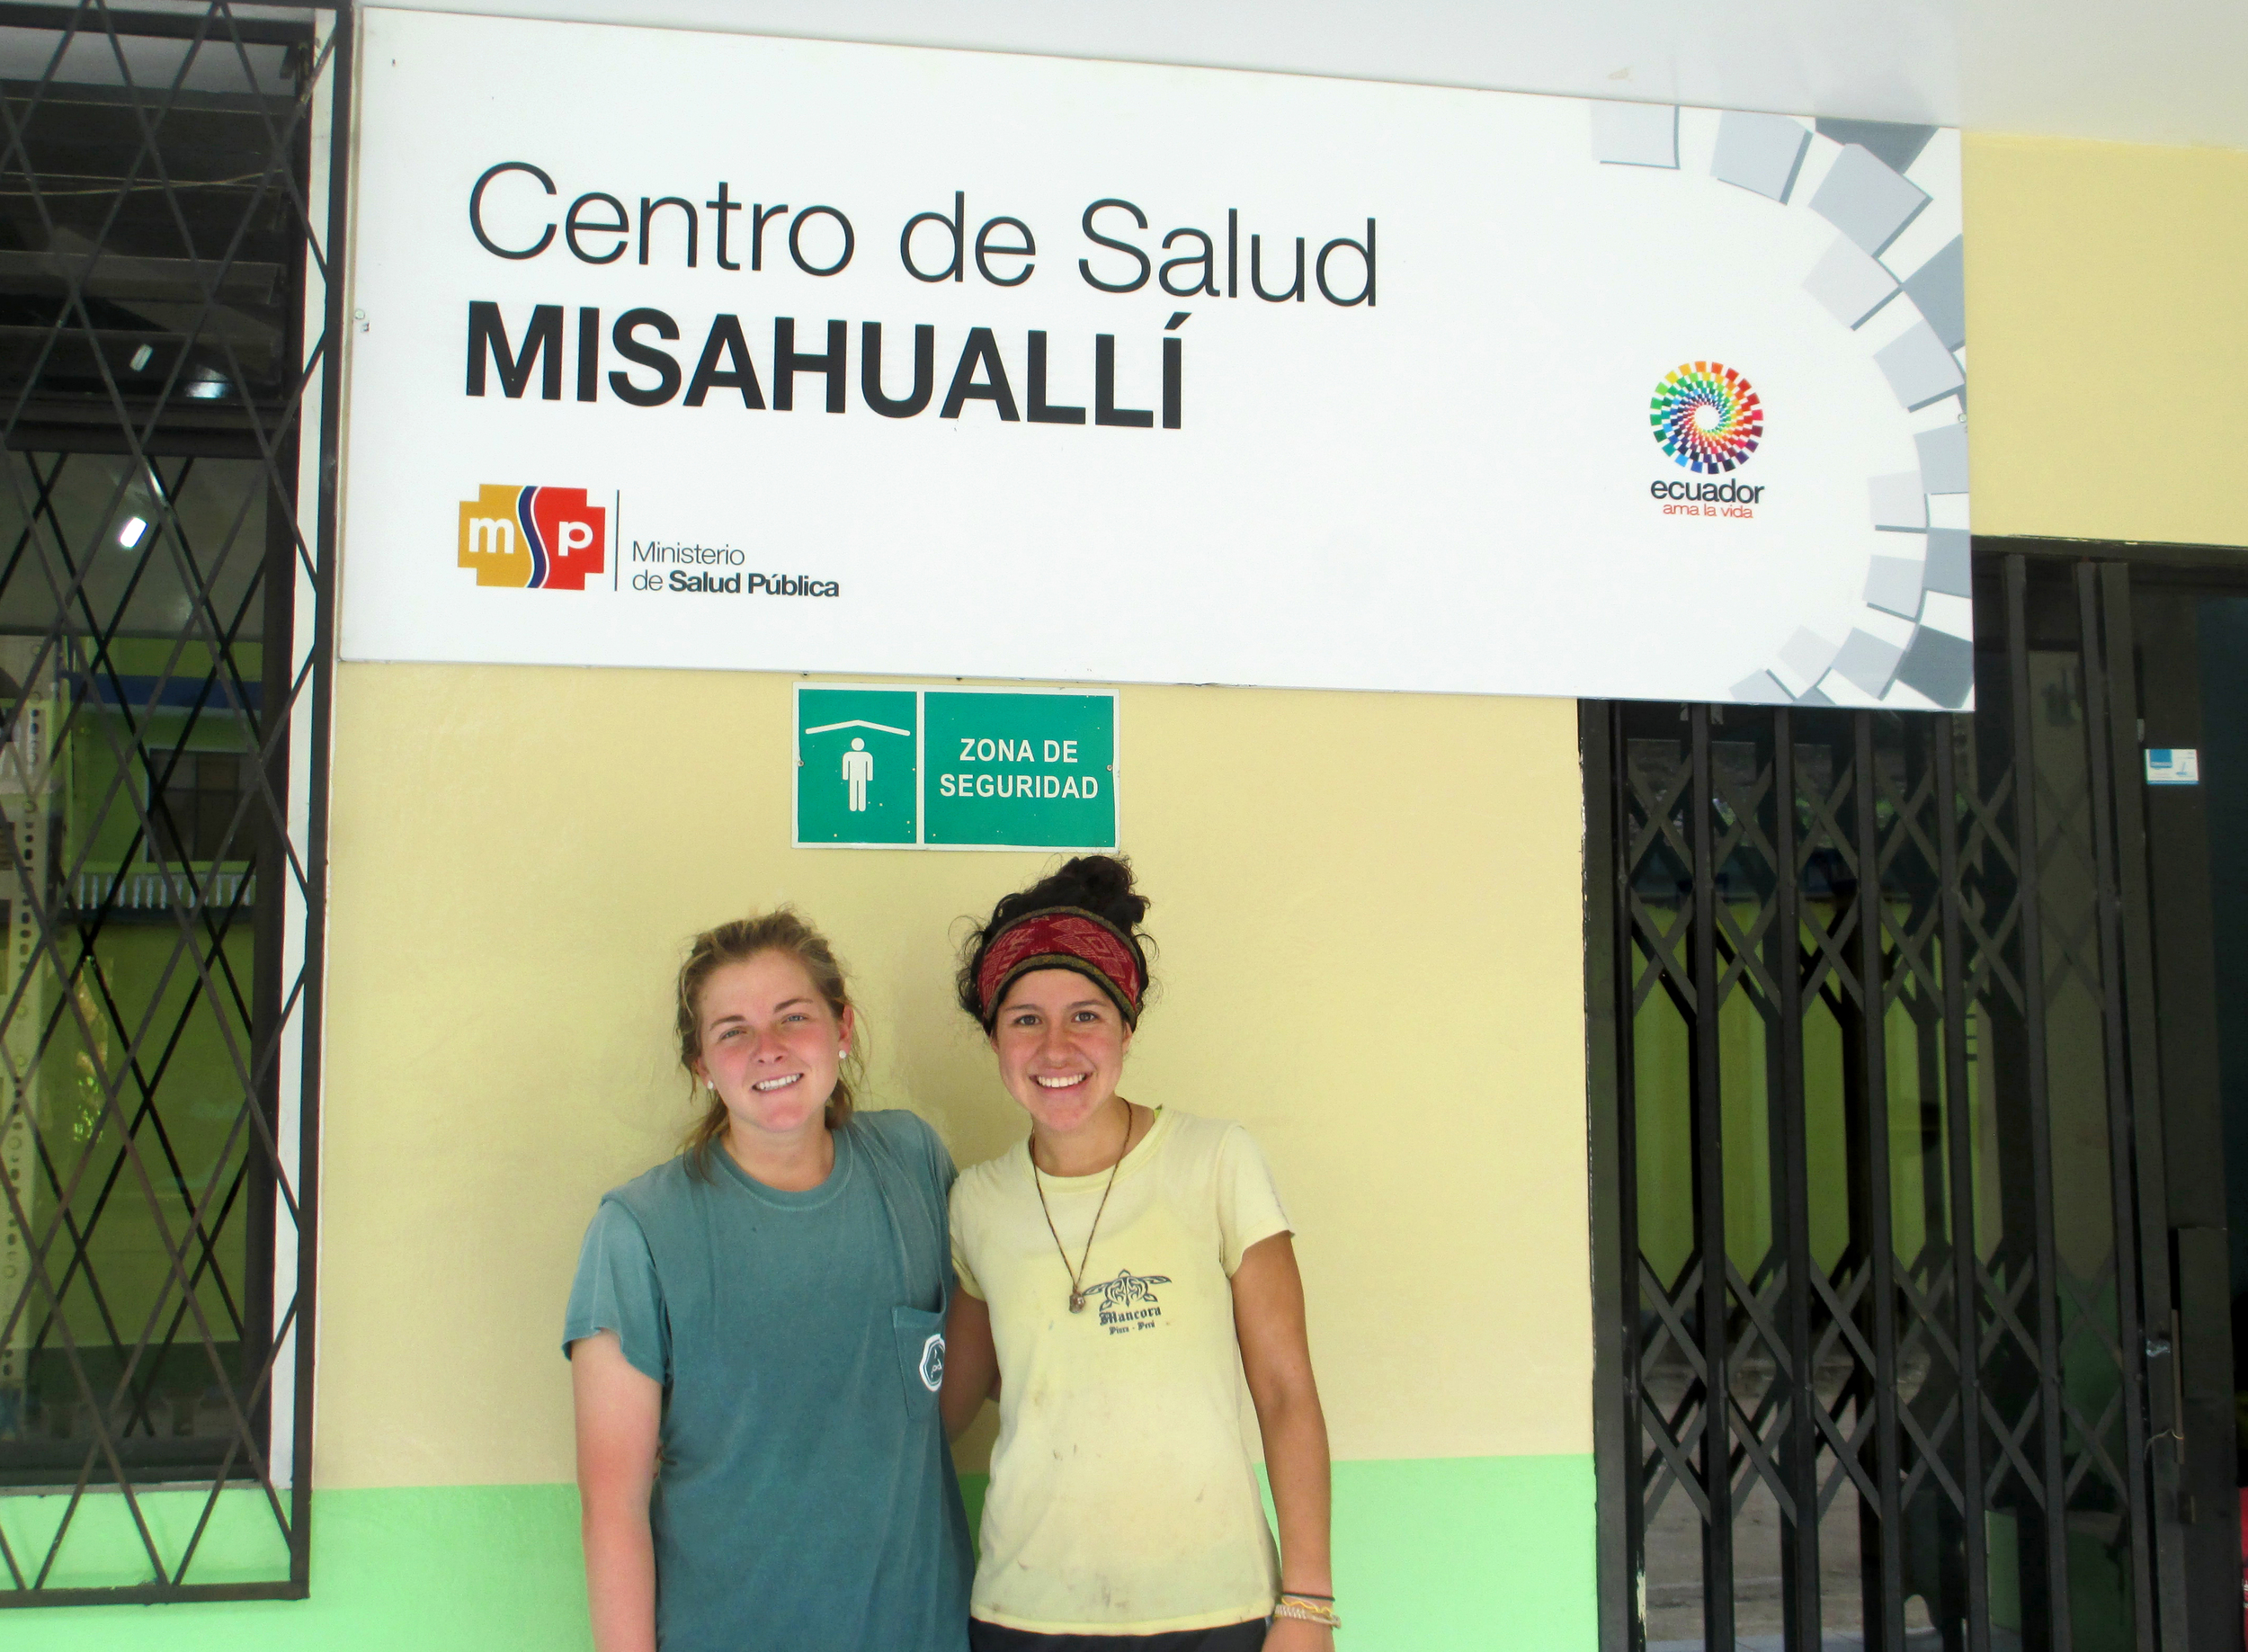 Two of our Cusco summer interns, Vanessa Riva and Amy Scheel, visited our project site in rural Tena, Ecuador. Here they're standing in front of Misahualli, one of the four clinics we're working in. Photo taken: July 16, 2013.